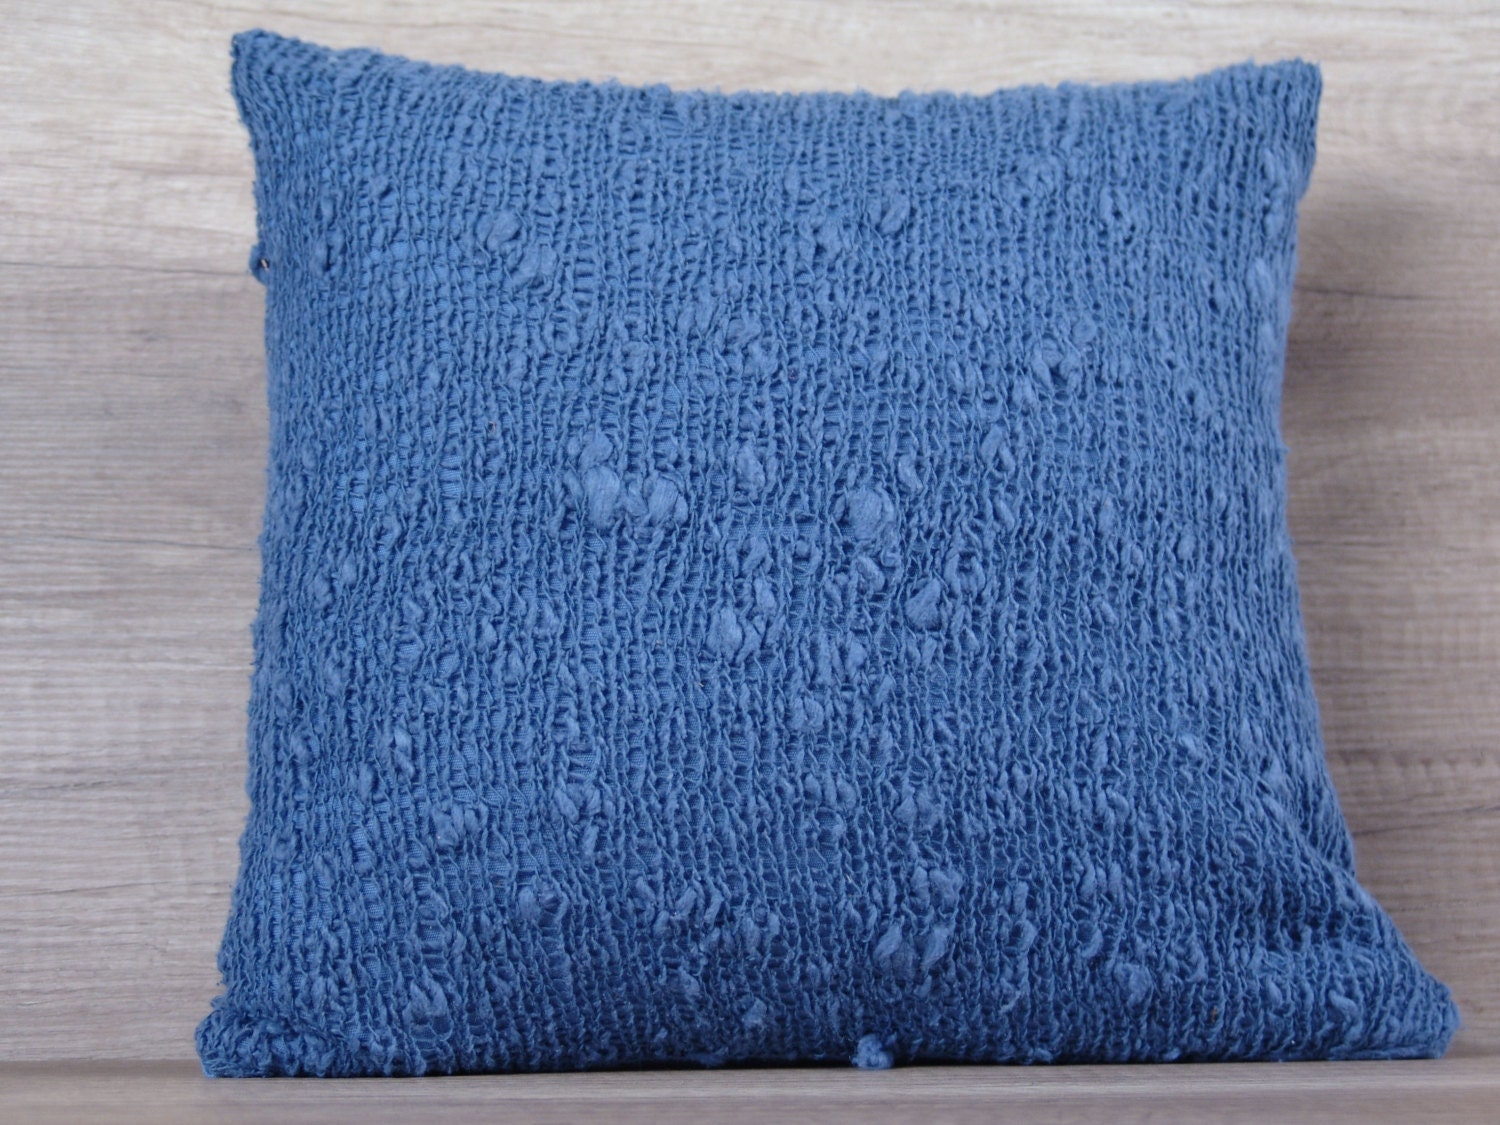 Decorative Pillows Navy : Navy blue knit decorative pillow case knitted euro pillow